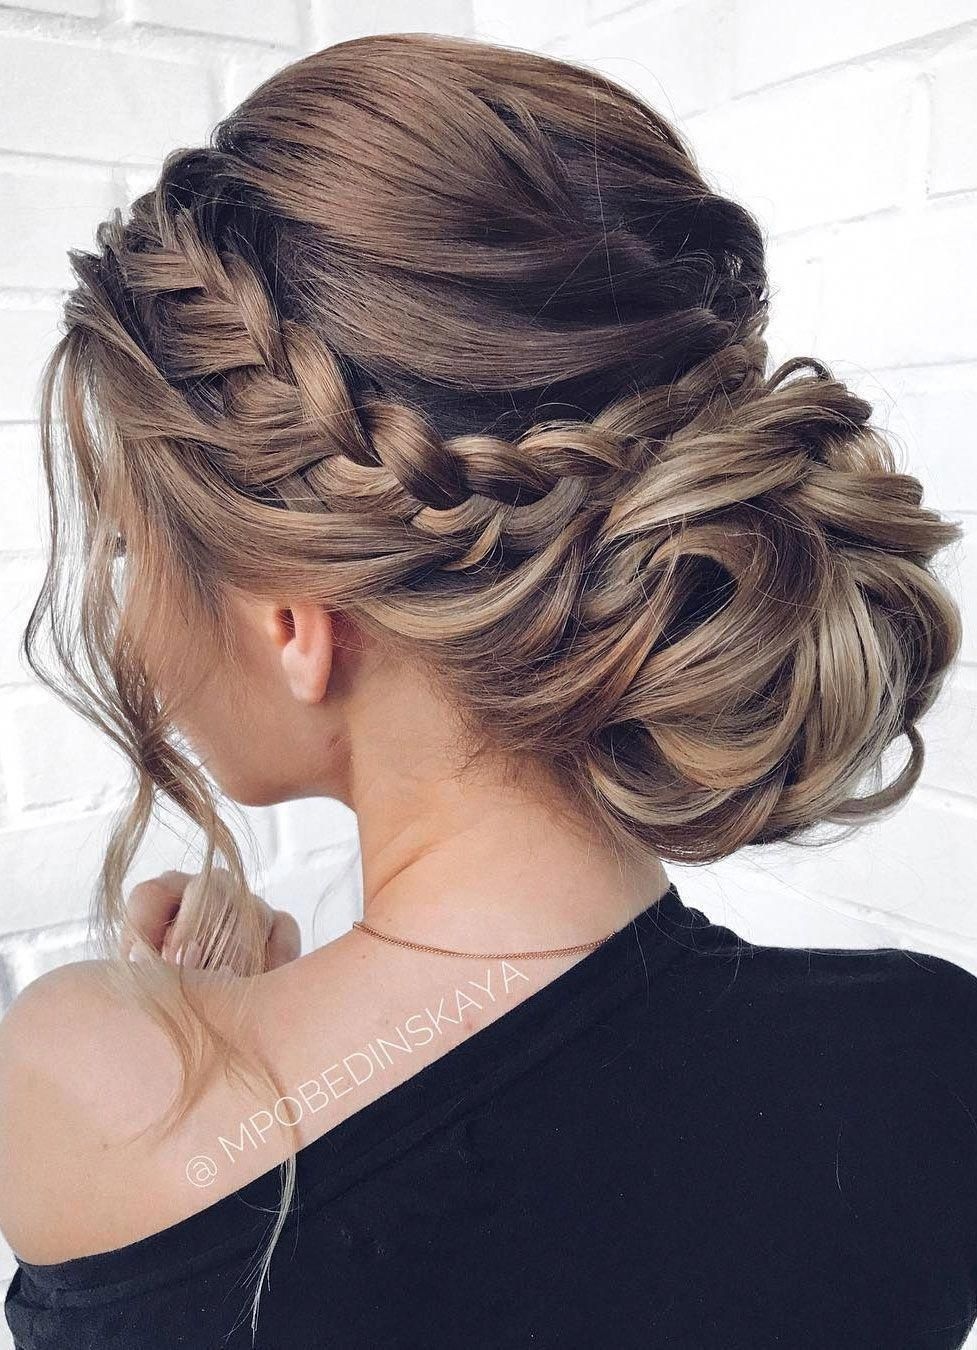 medium length braid wedding updo hairstyles